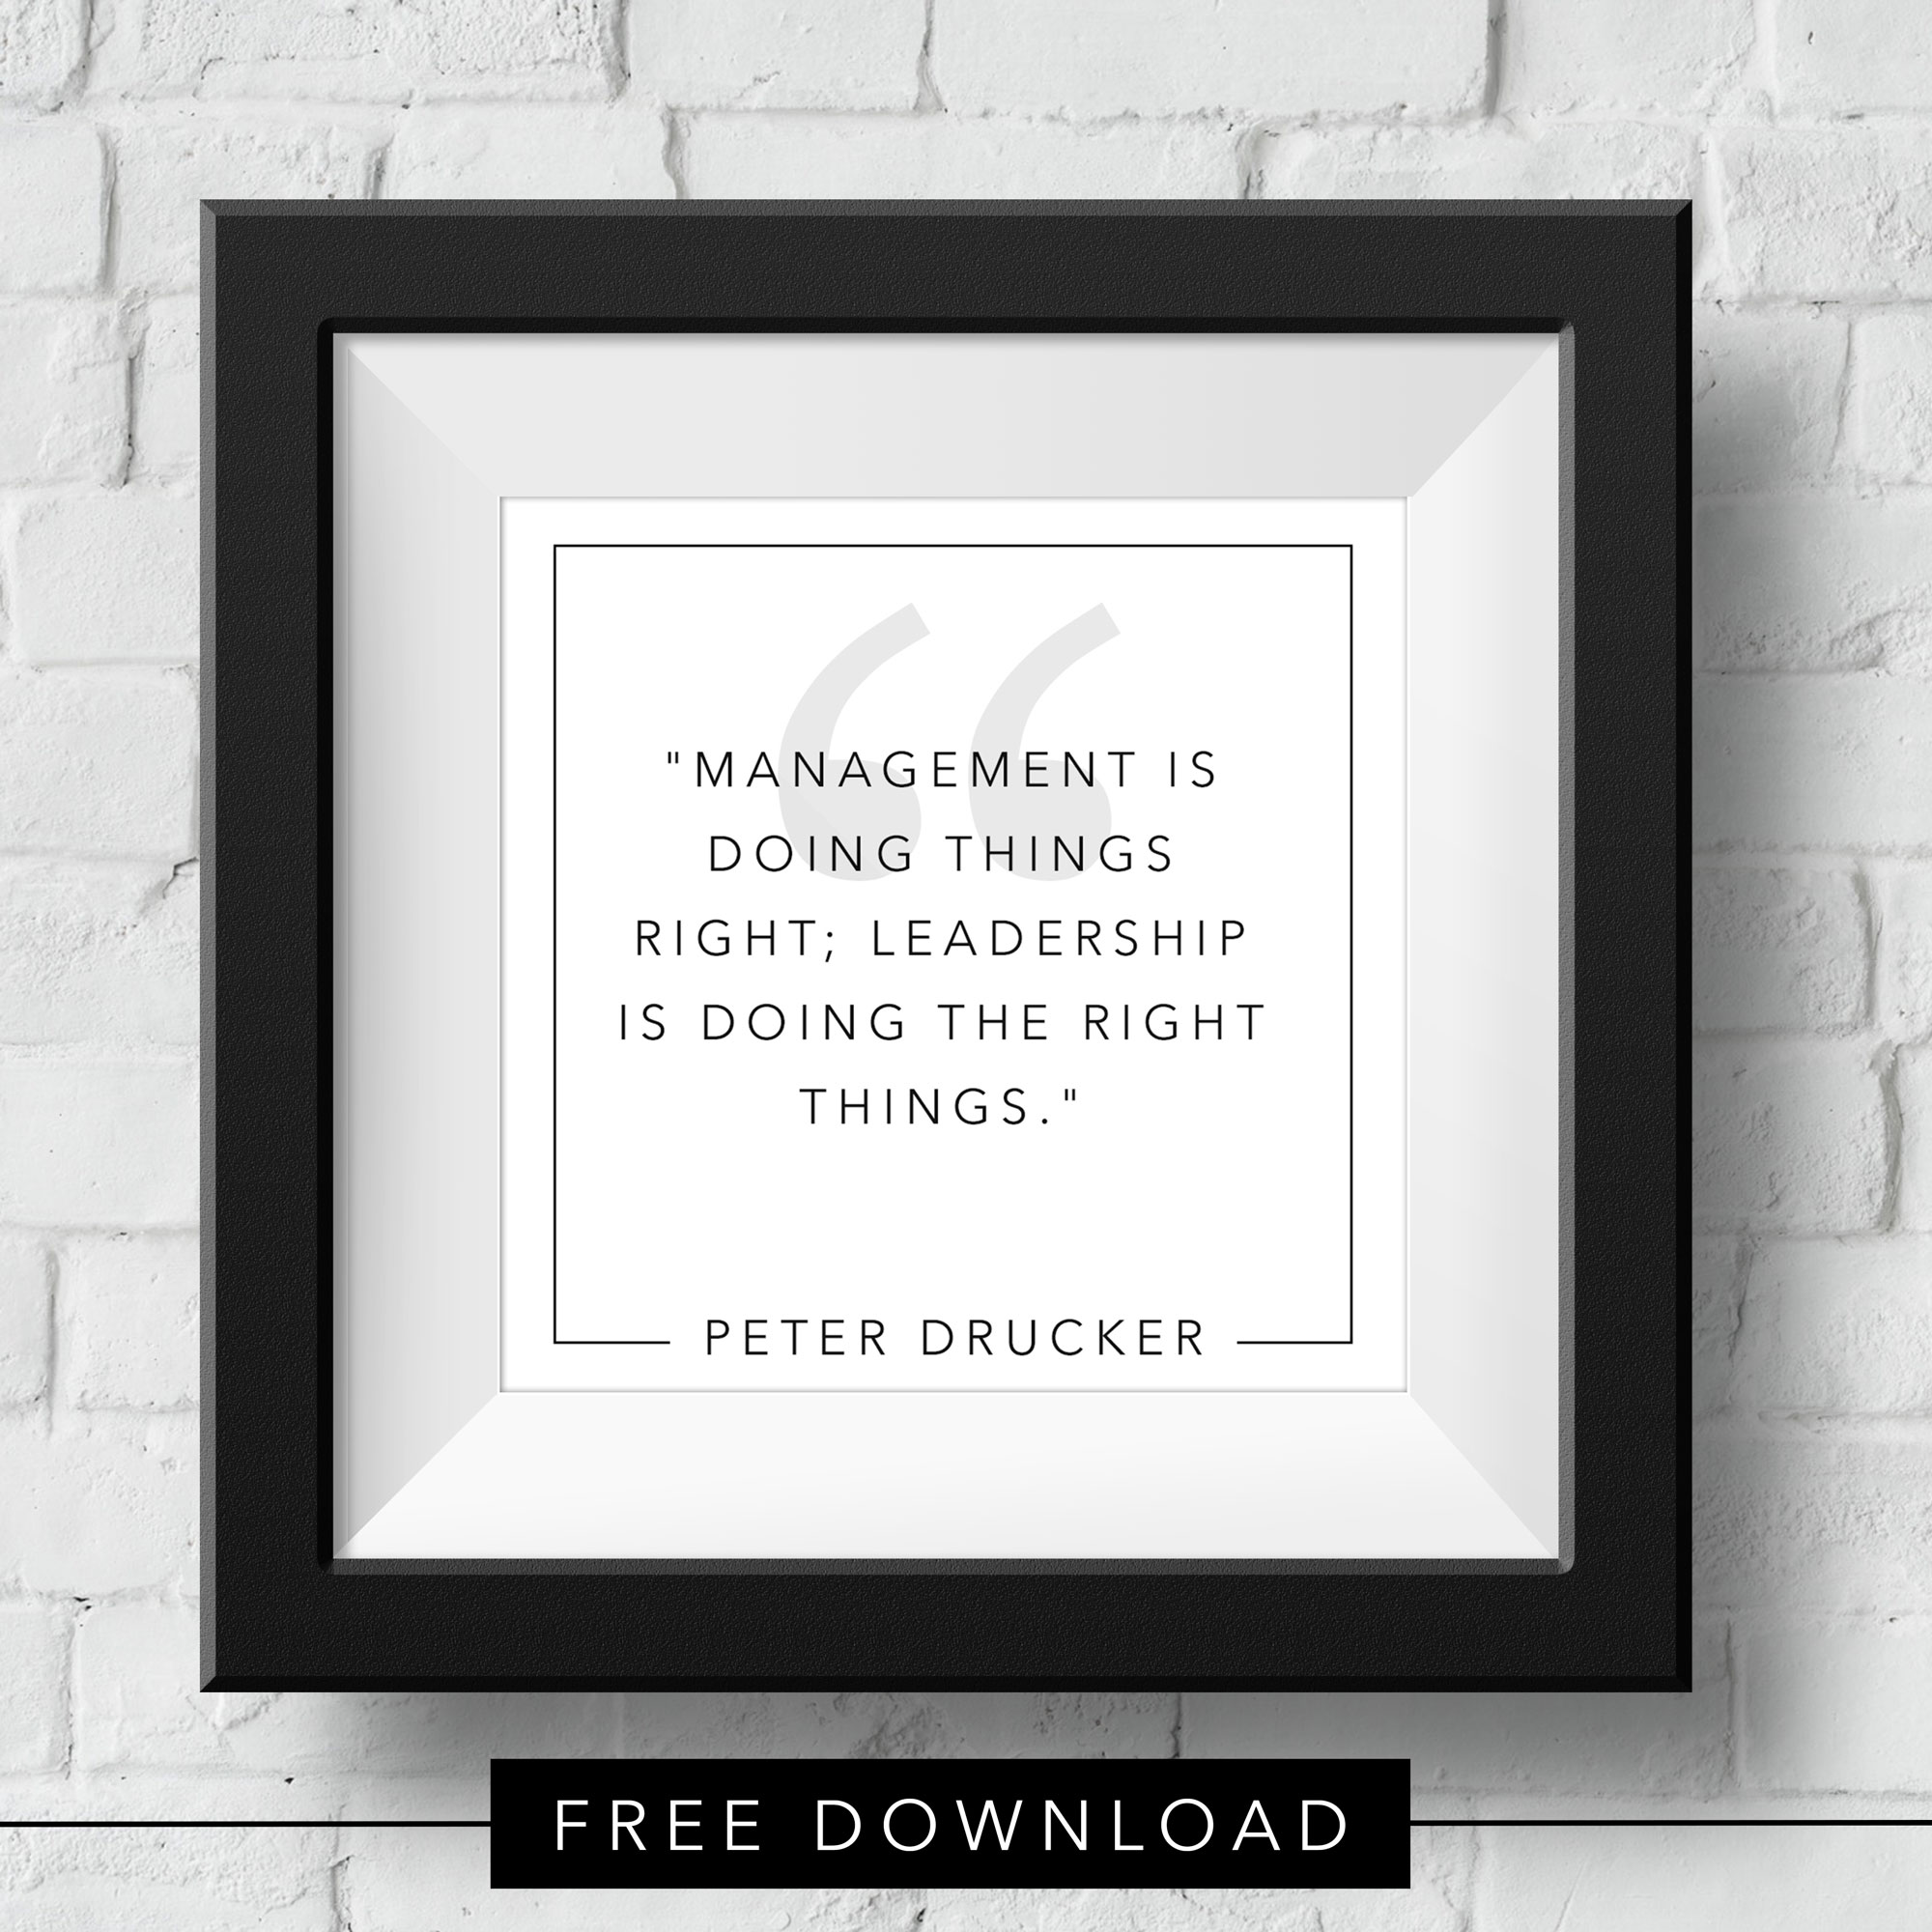 management-peter-drucker-free-download